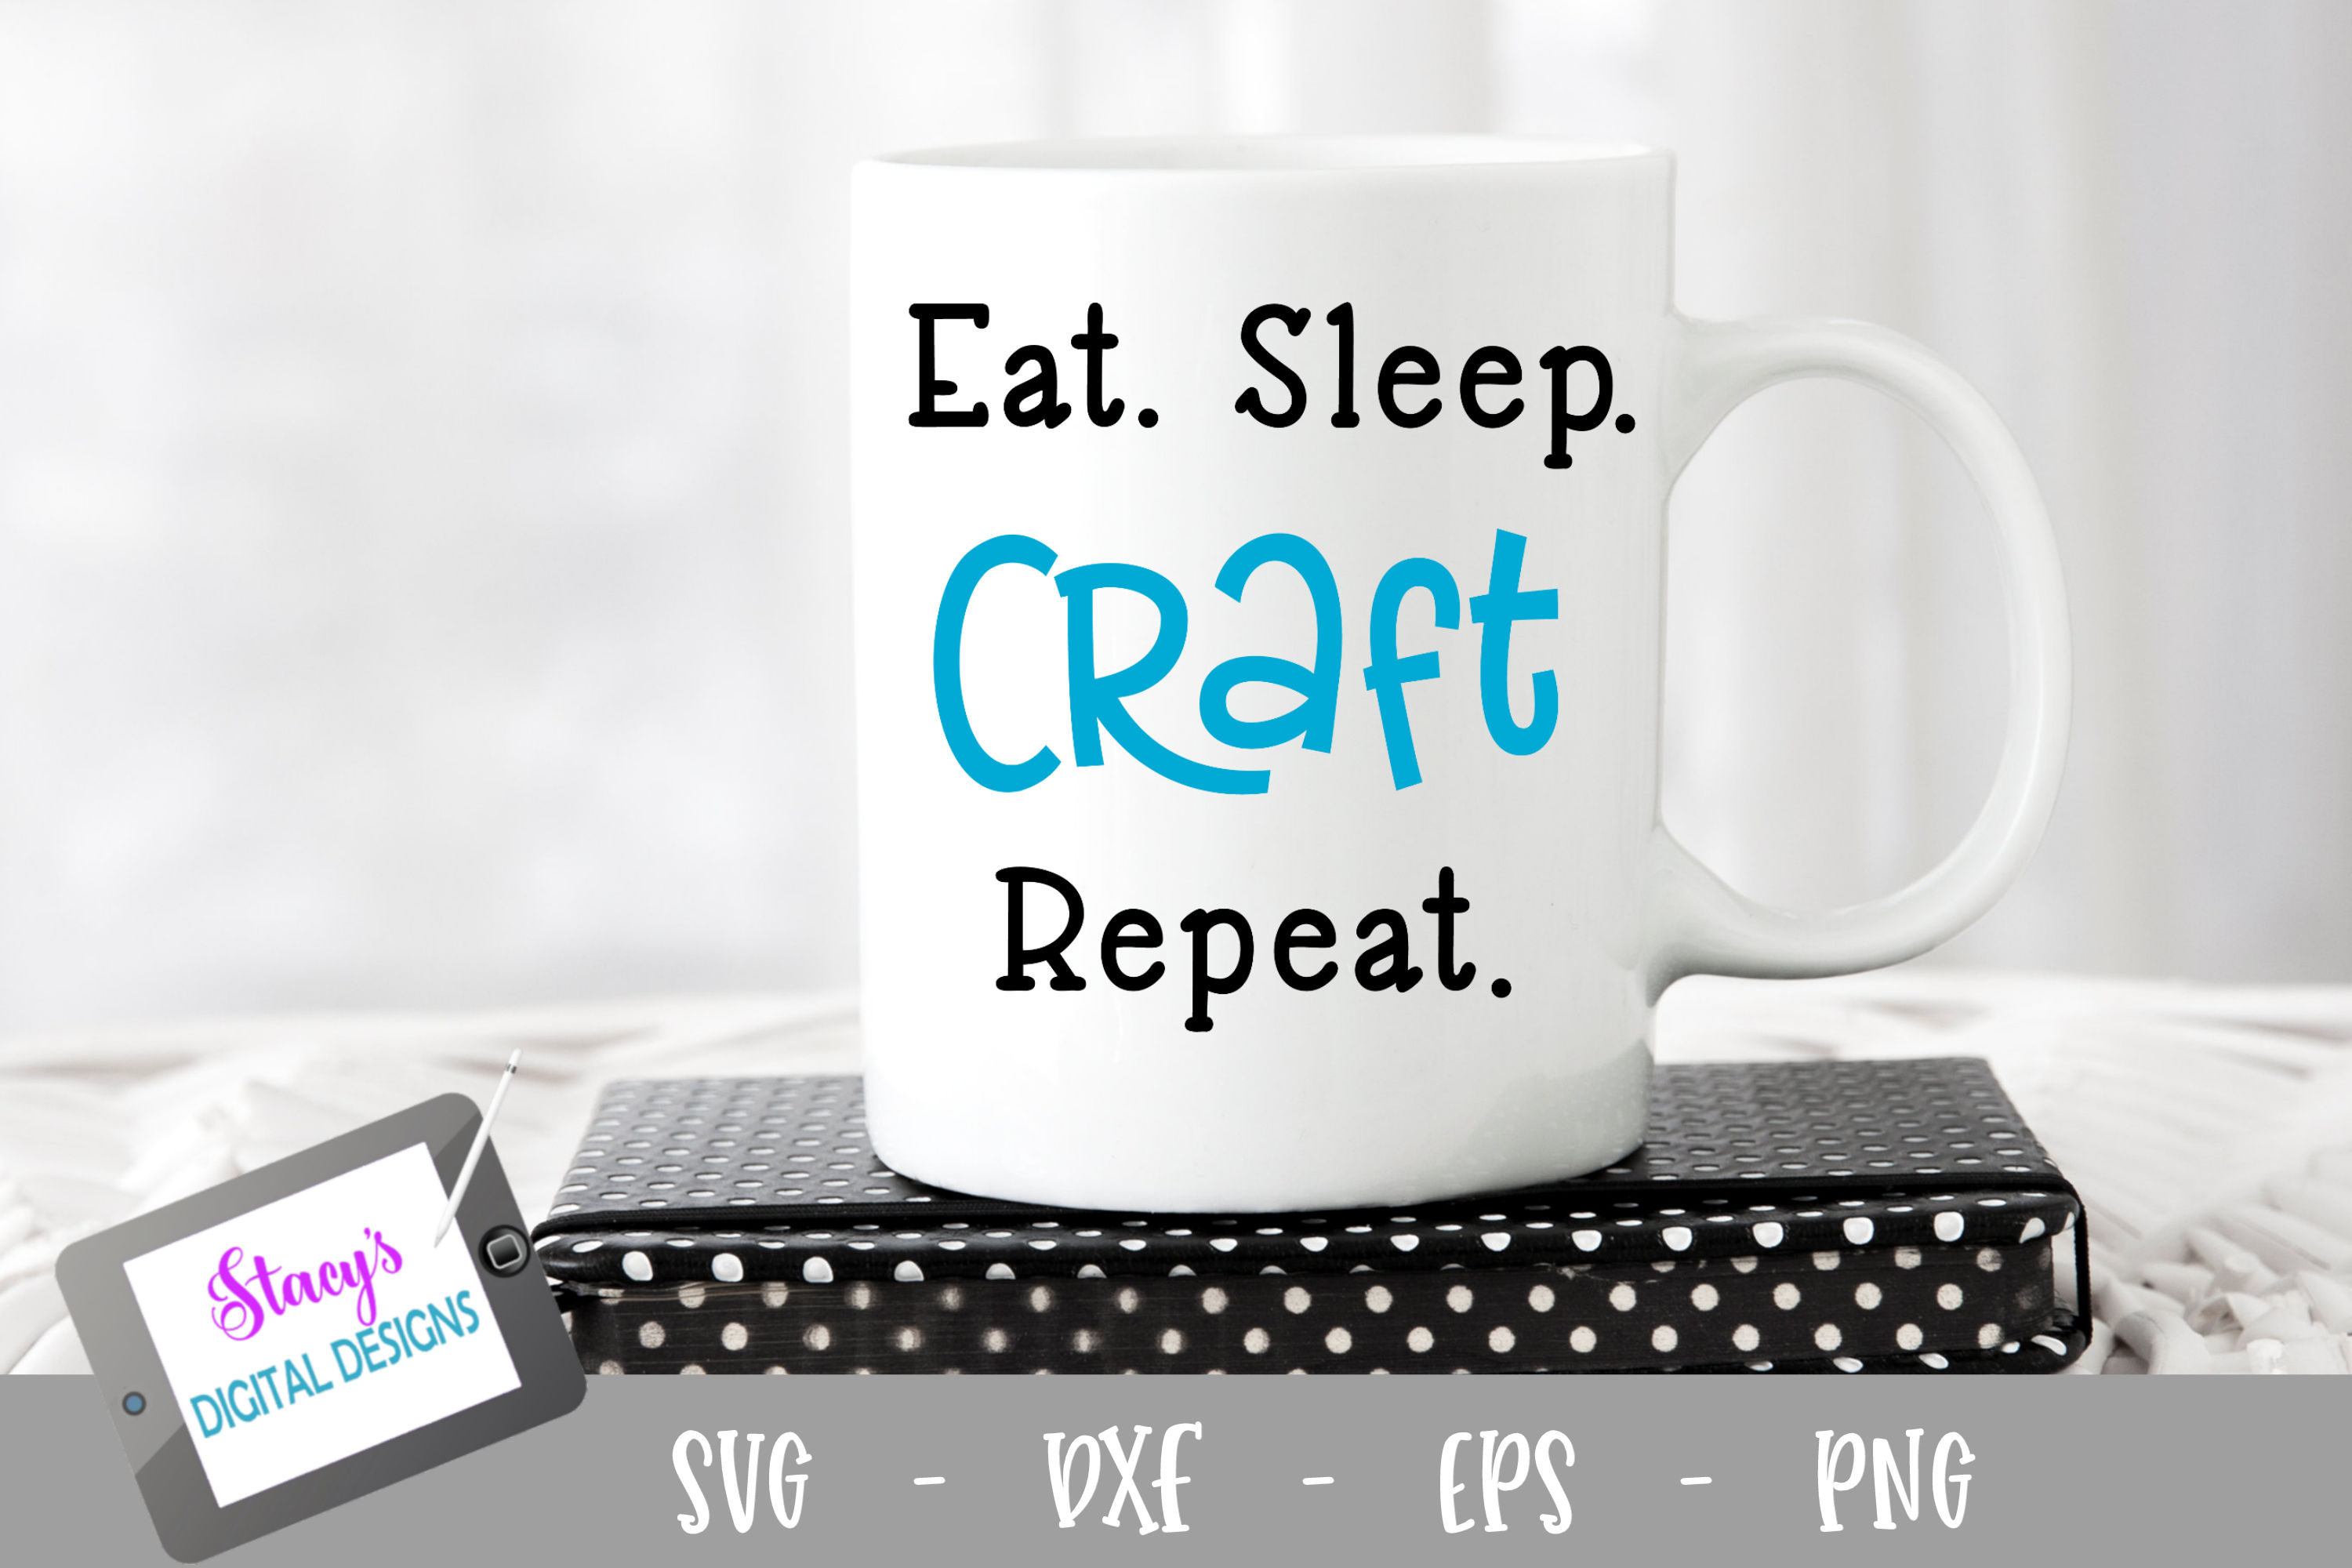 Download Free Eat Sleep Craft Repeat Graphic By Stacysdigitaldesigns for Cricut Explore, Silhouette and other cutting machines.